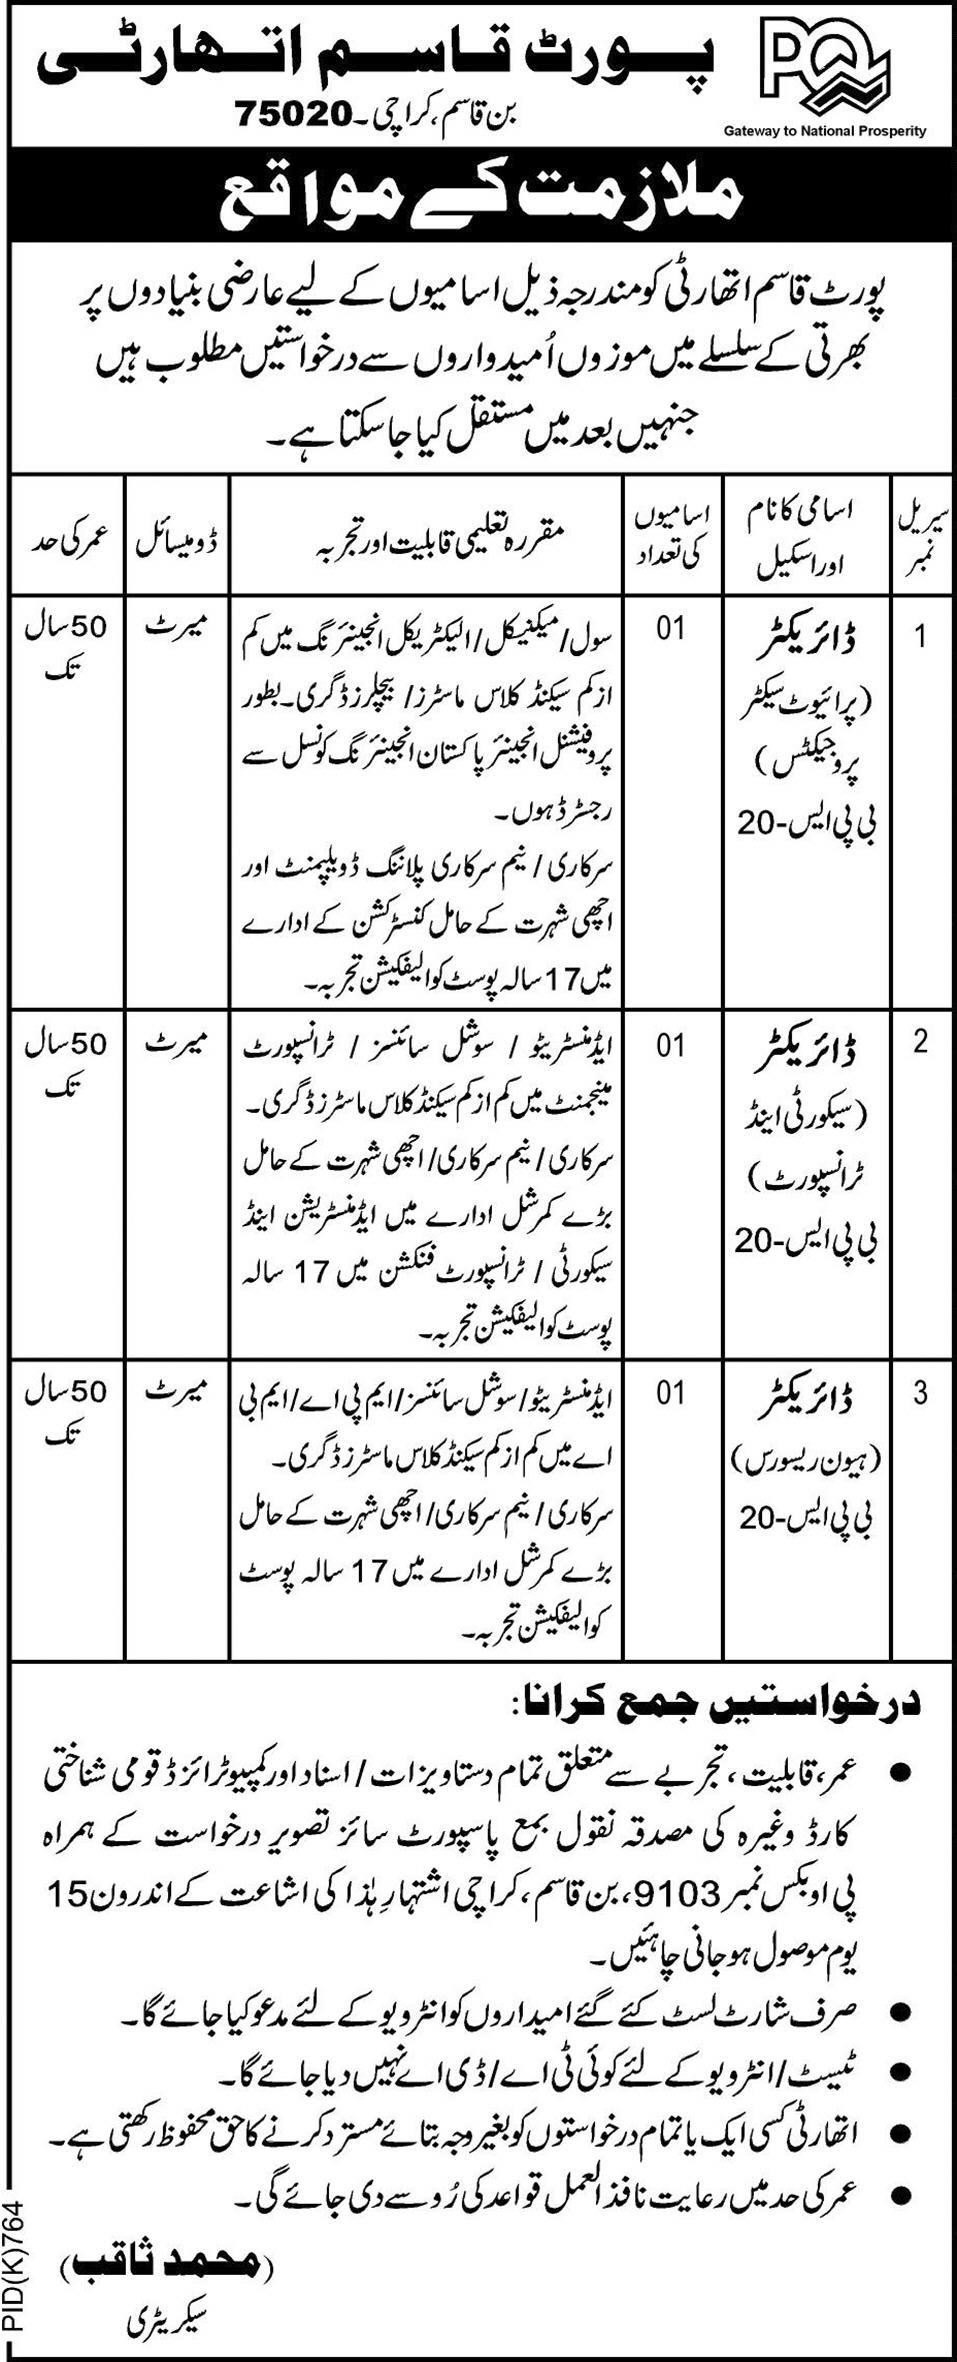 Port Qasim Authority Requires Directors HR, Security and Private Sector Projects (Government Job)